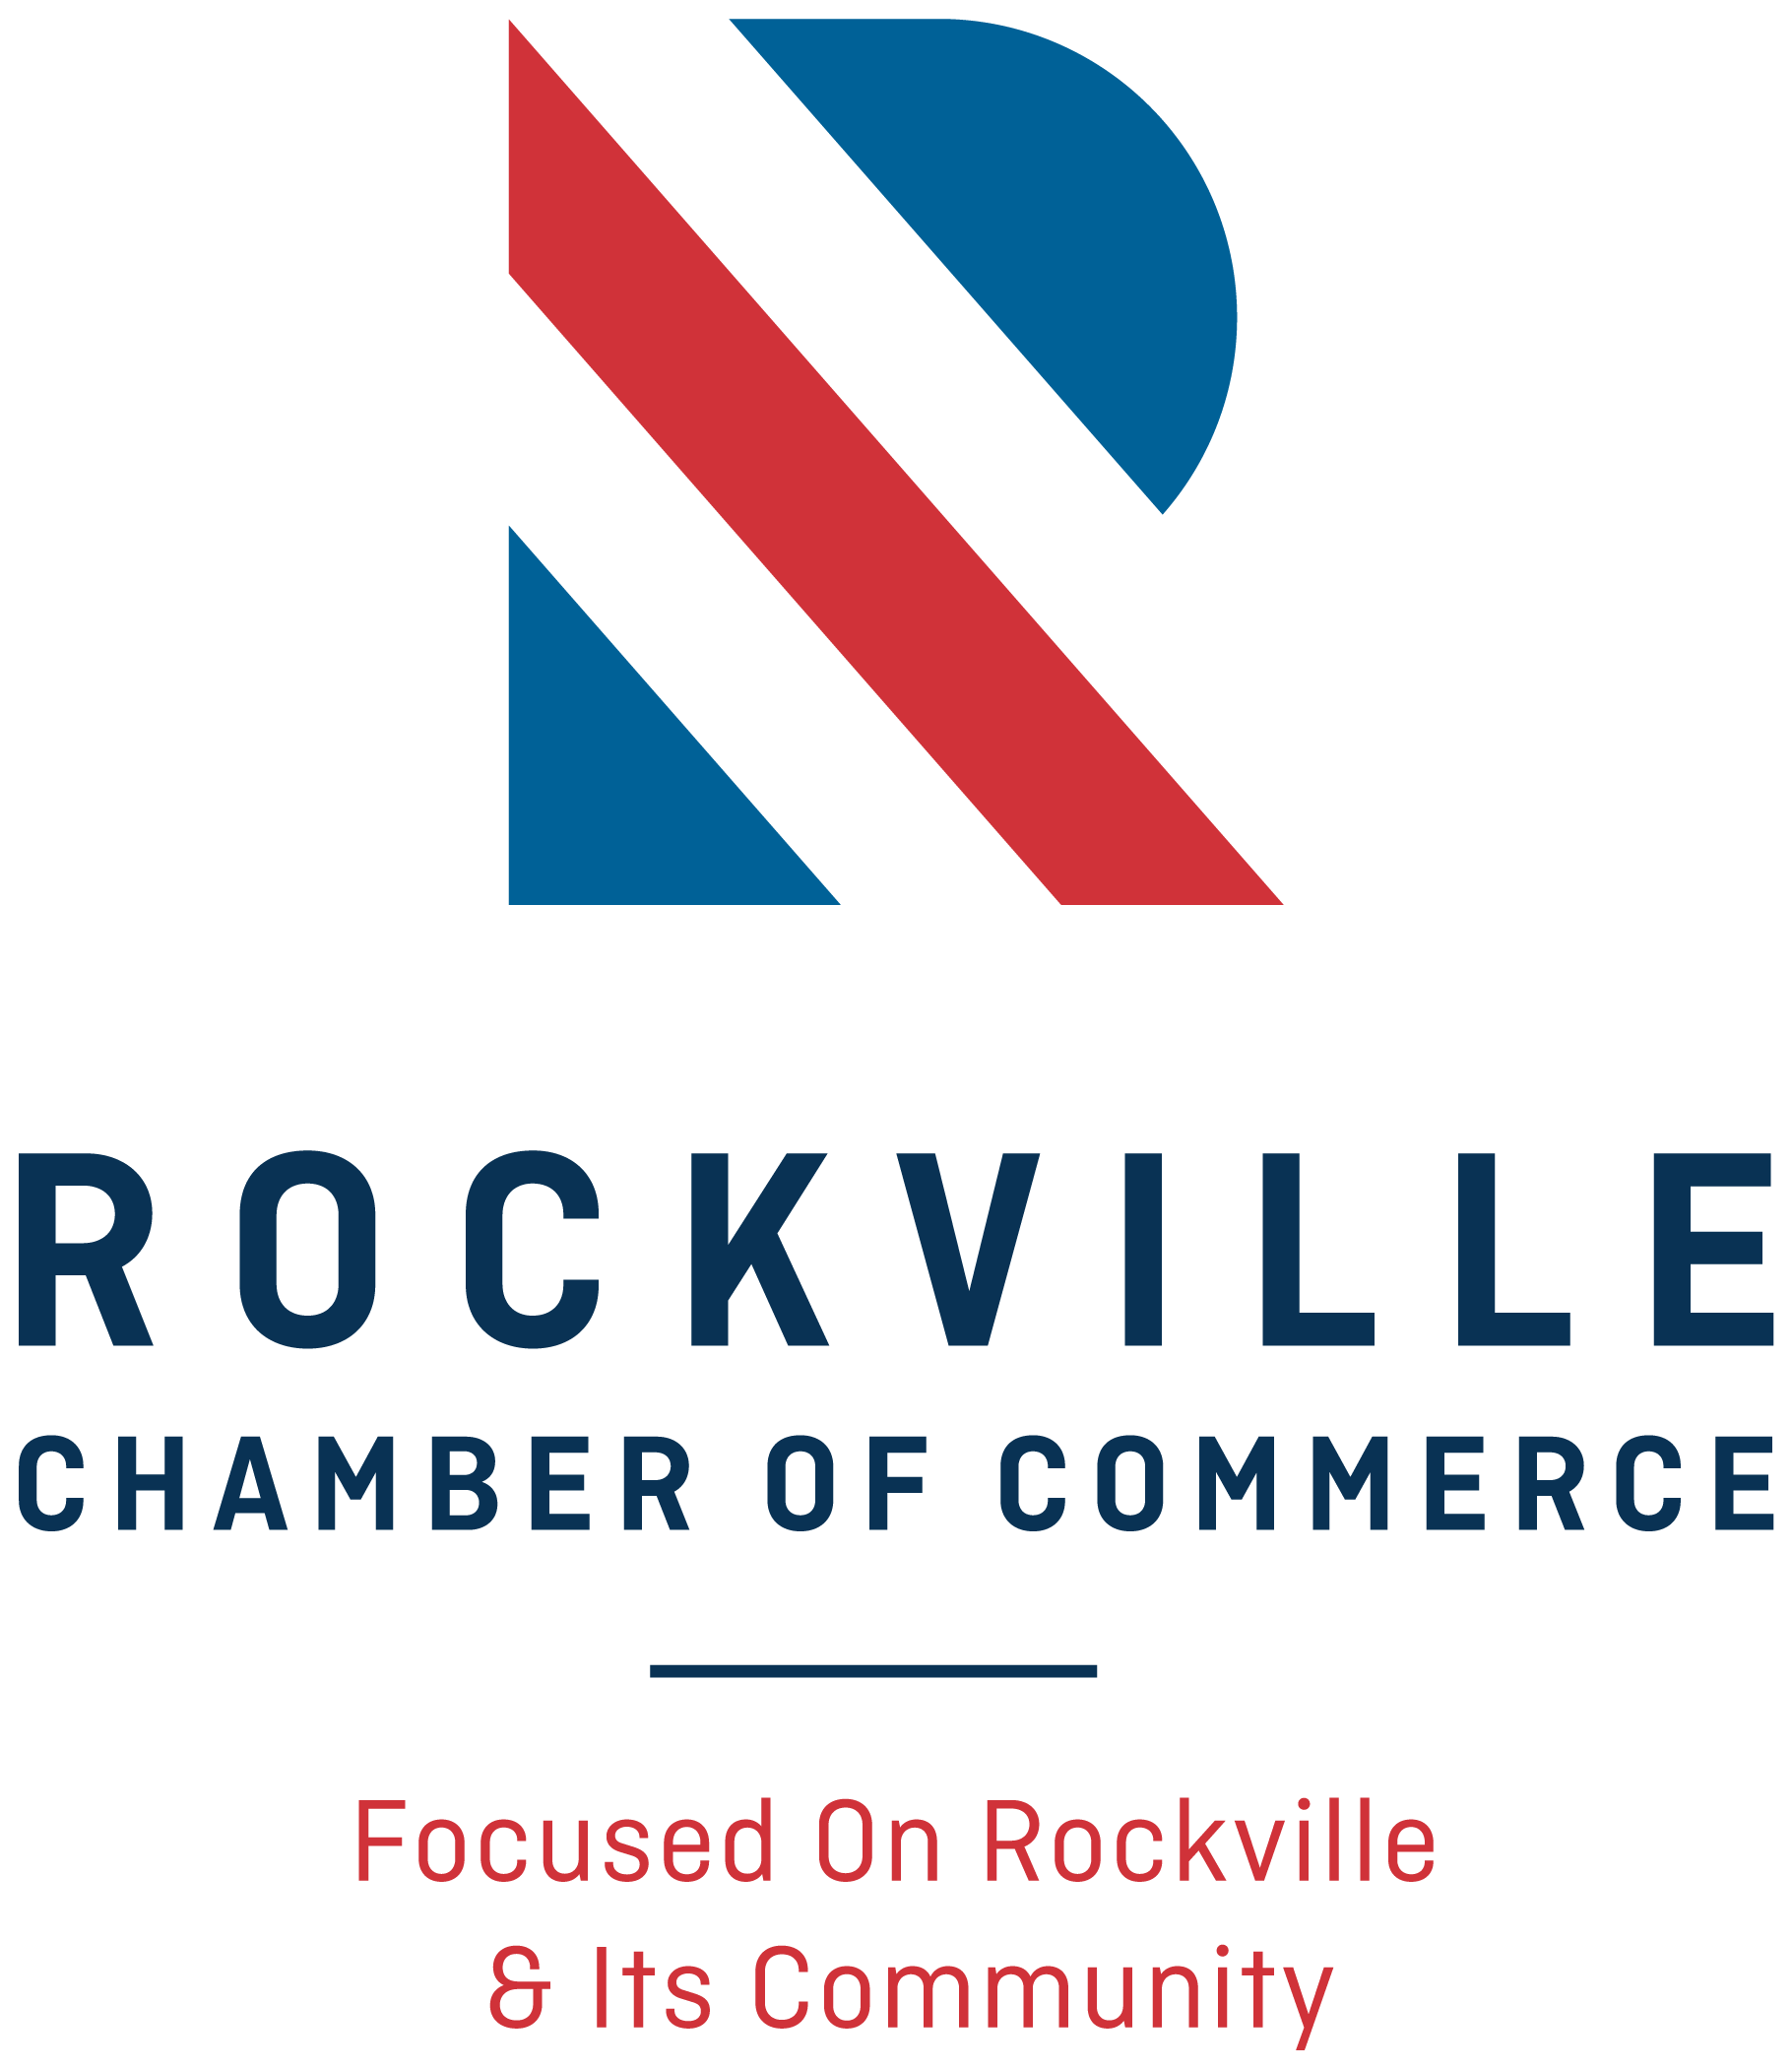 Rockville Chamber of Commerce: Focused on Rockville & its Community